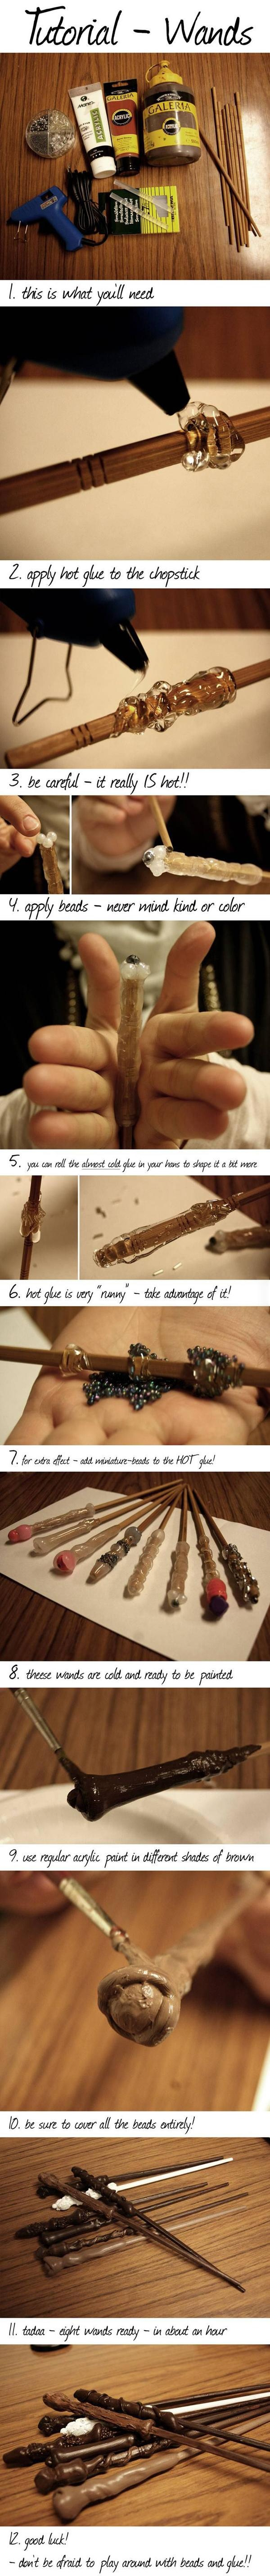 Make your own magic wand! - Win Bild - Webfail